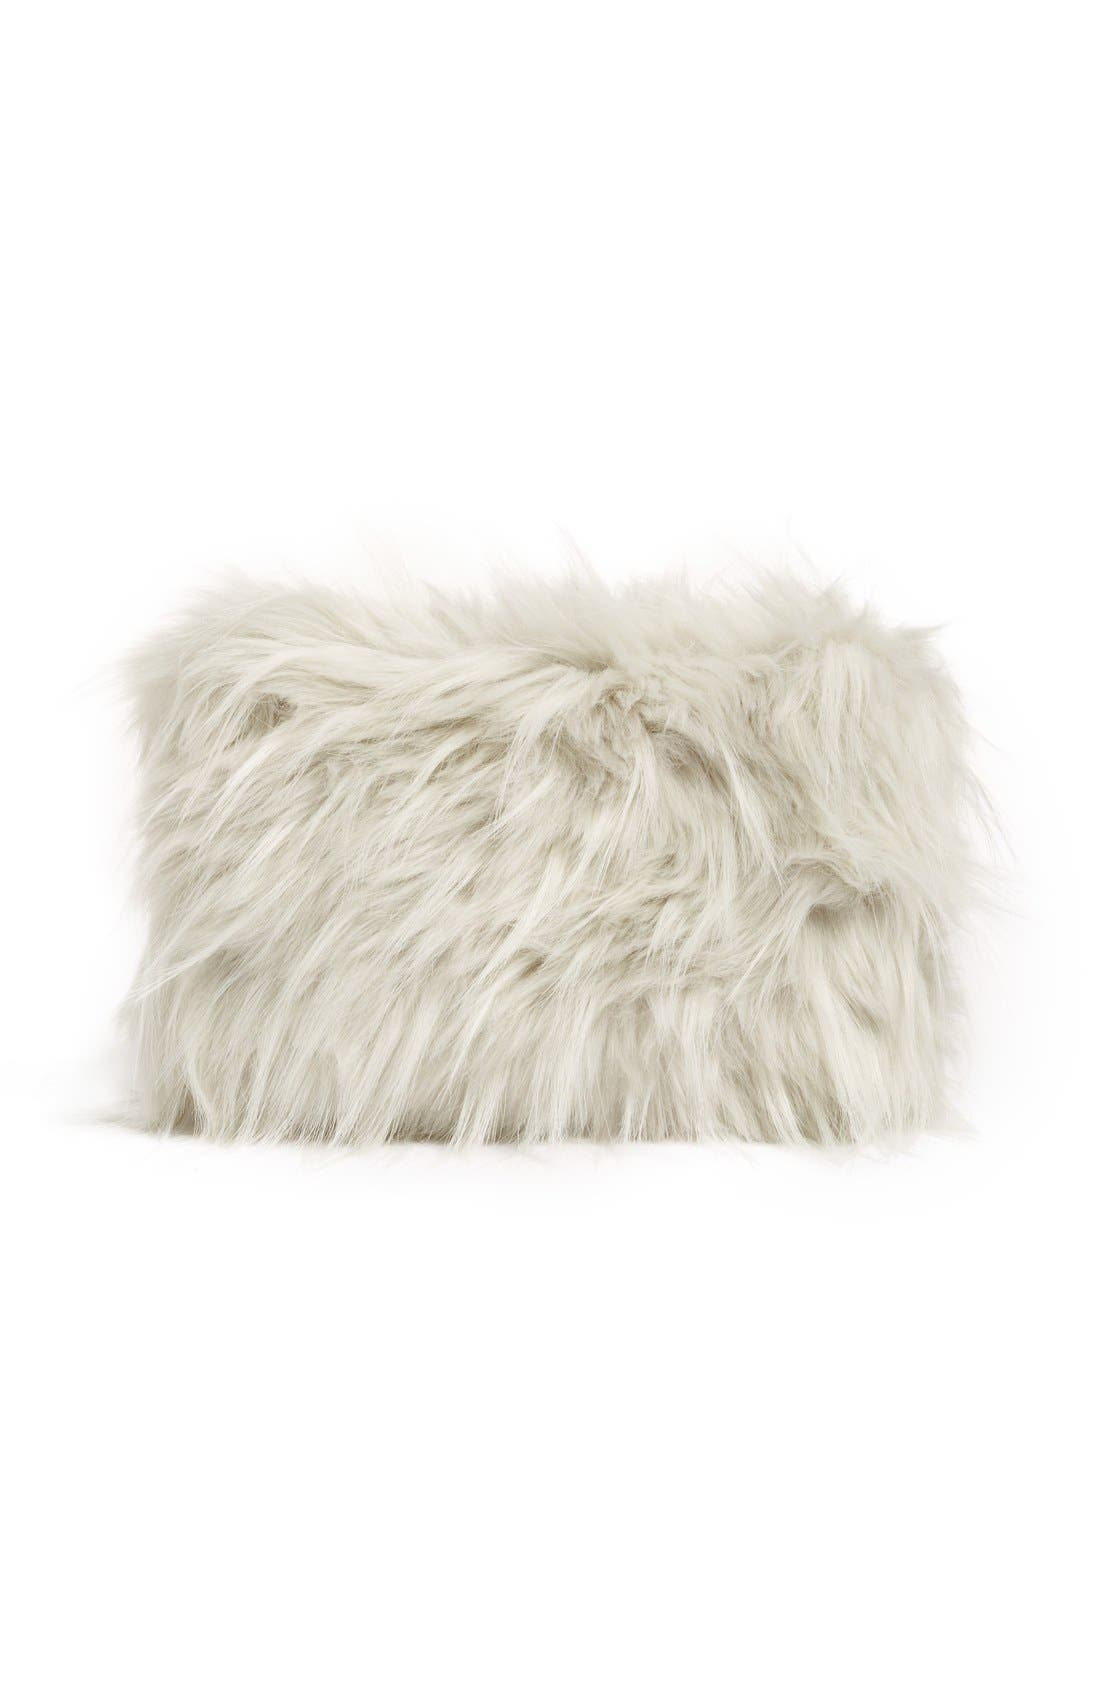 NORDSTROM AT HOME, Cuddle Up Faux Fur Pouch, Alternate thumbnail 3, color, 030